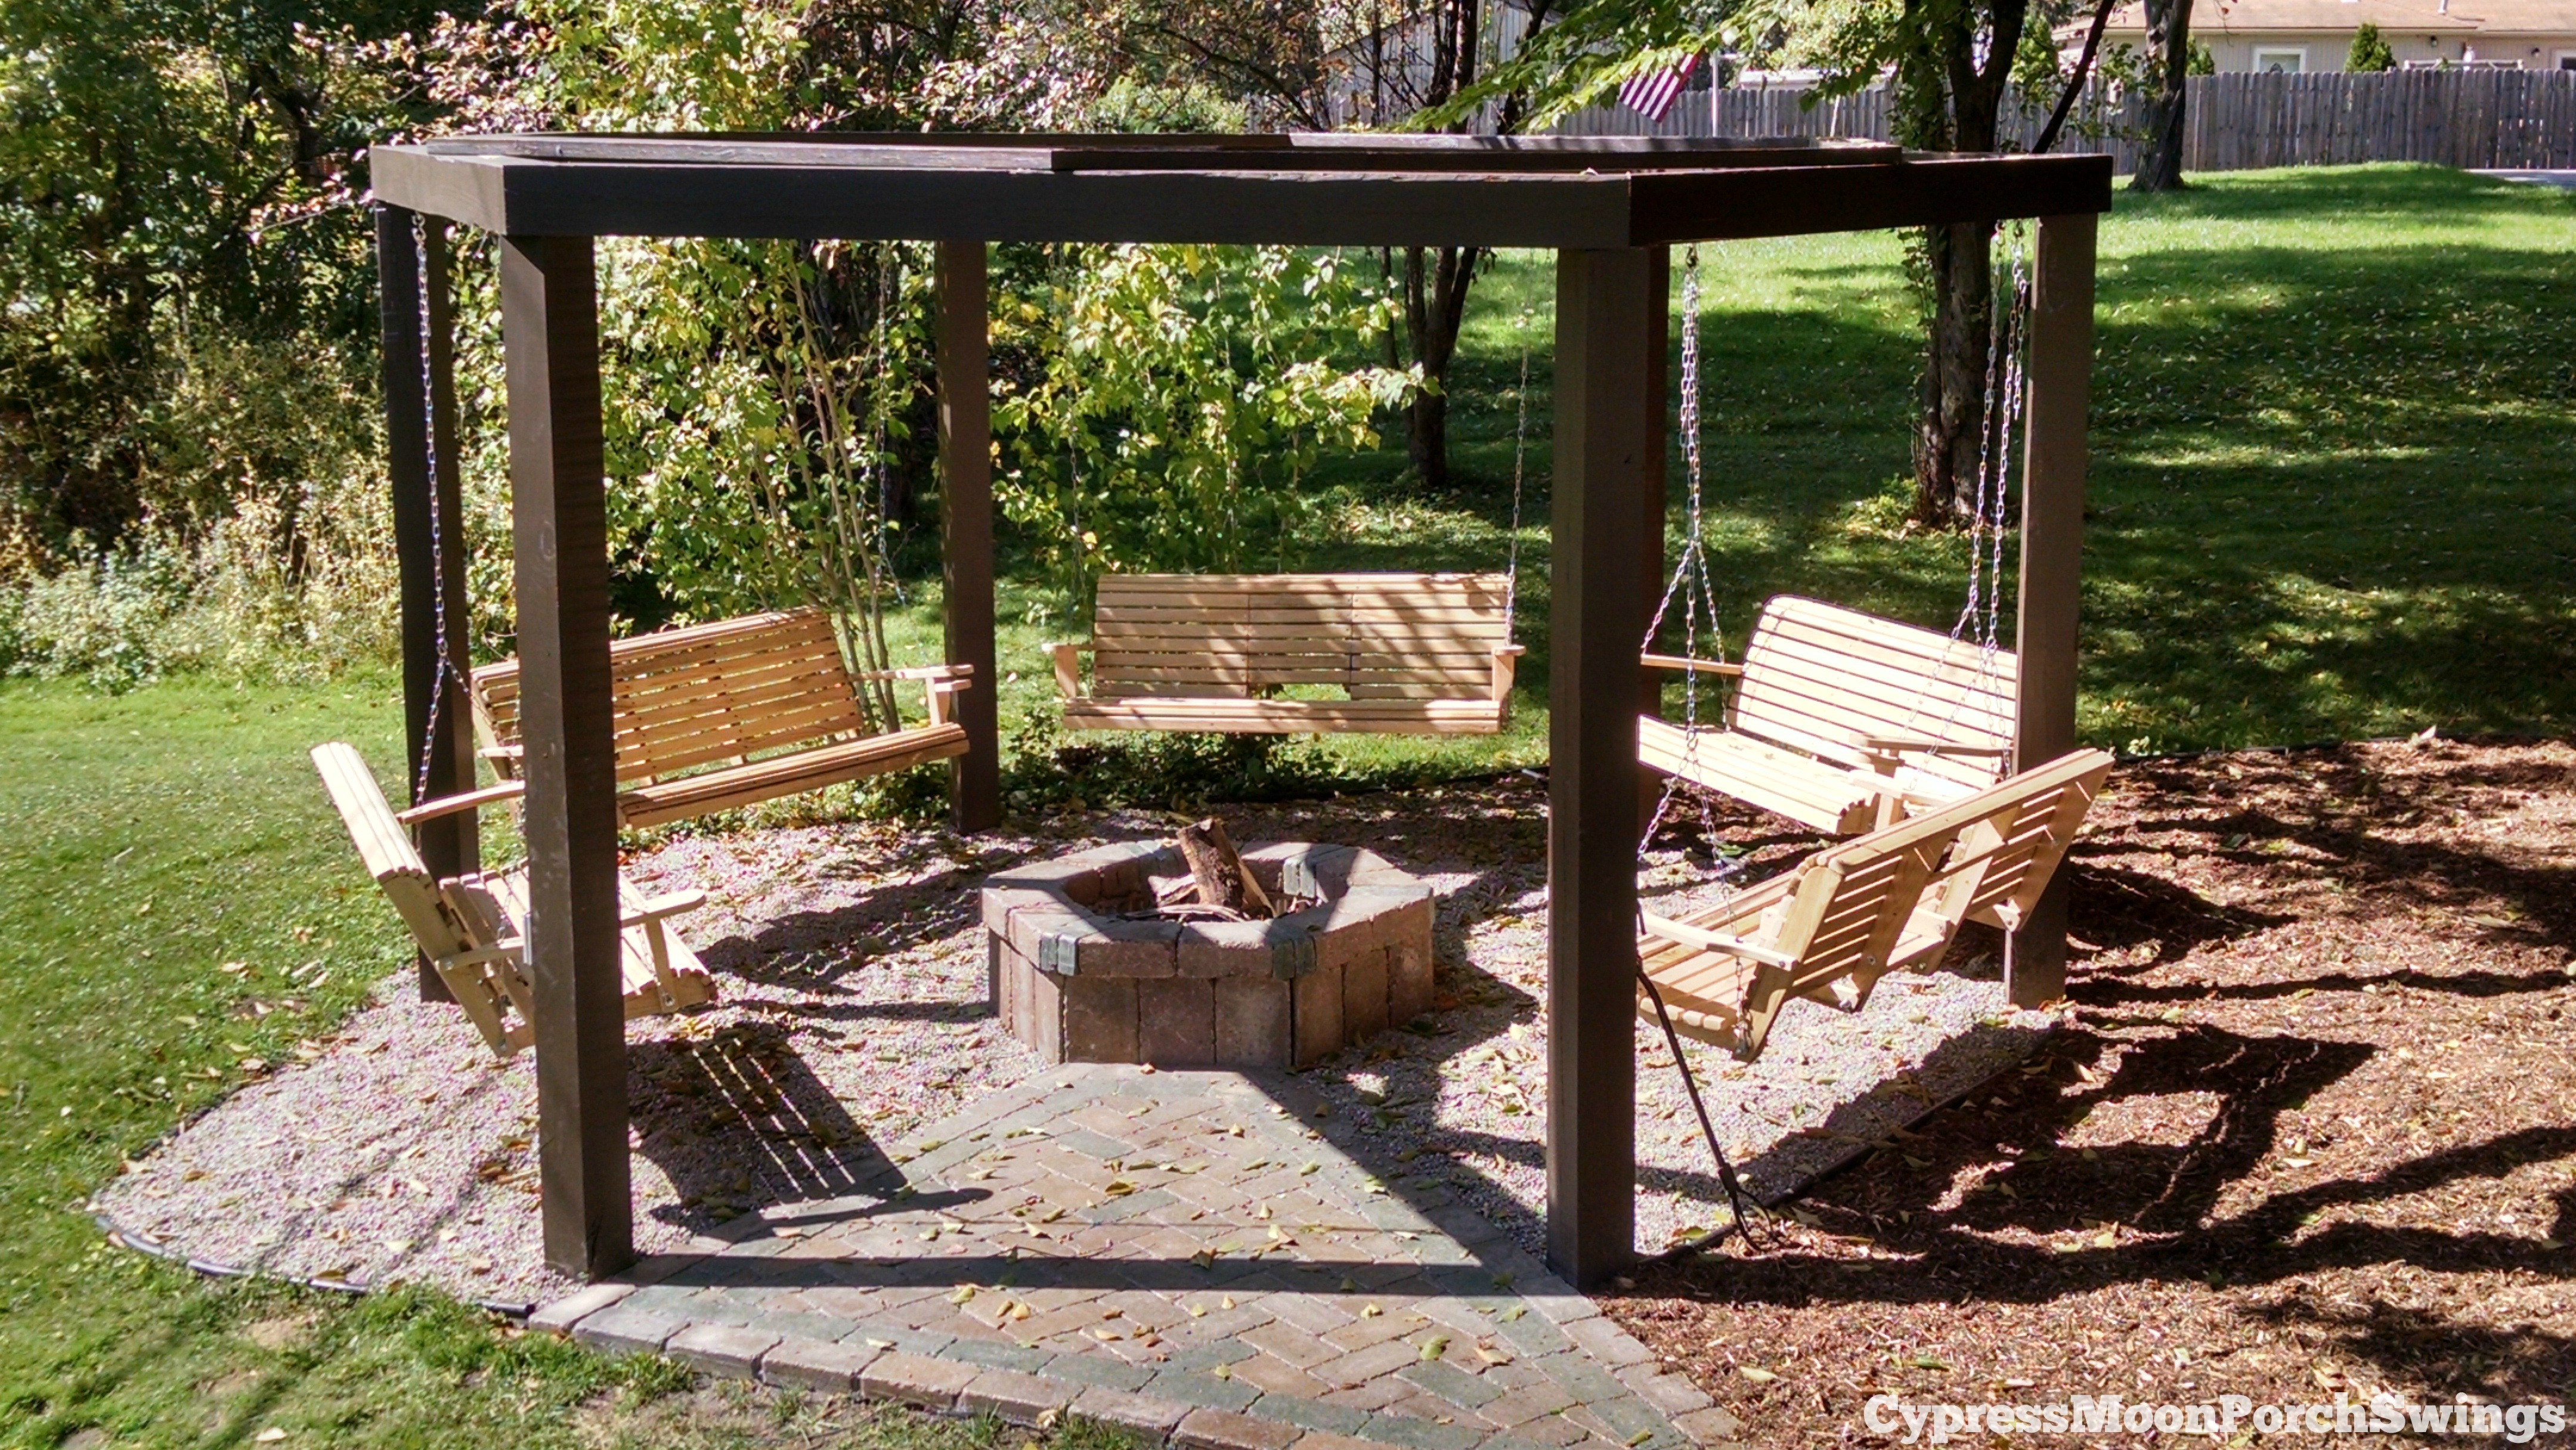 Outdoor%2BSwing%2BCircle Top Result 50 Awesome Backyard Creations Fire Pit Picture 2018 Ojr7